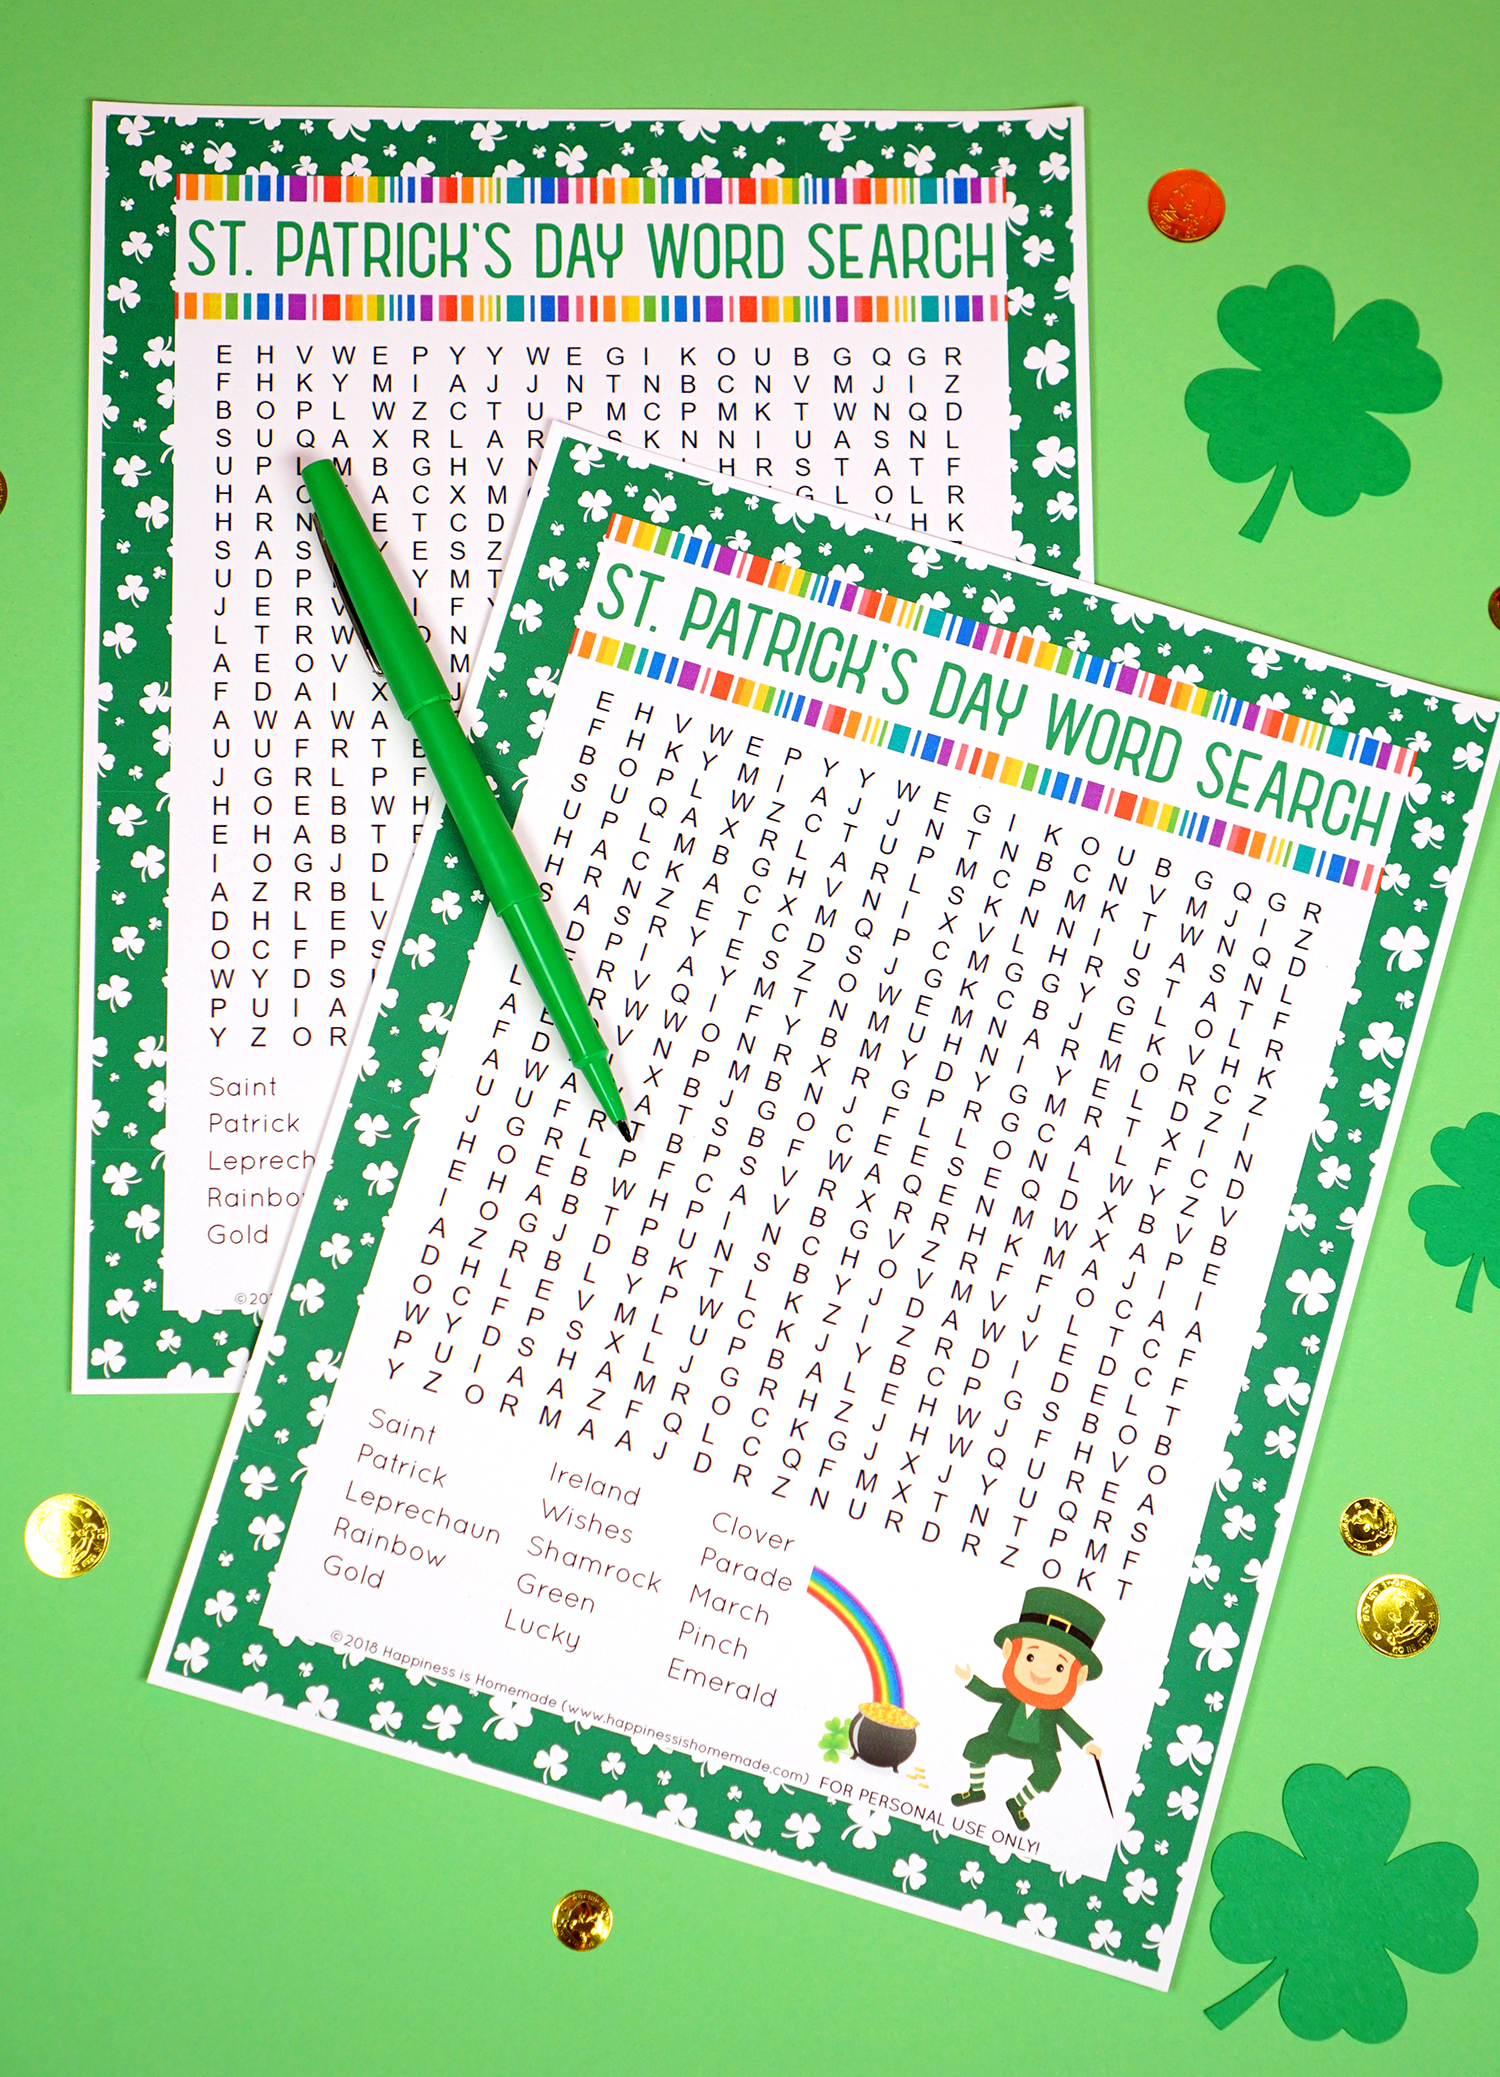 St. Patrick's Day Word Search Printable - Happiness Is Homemade